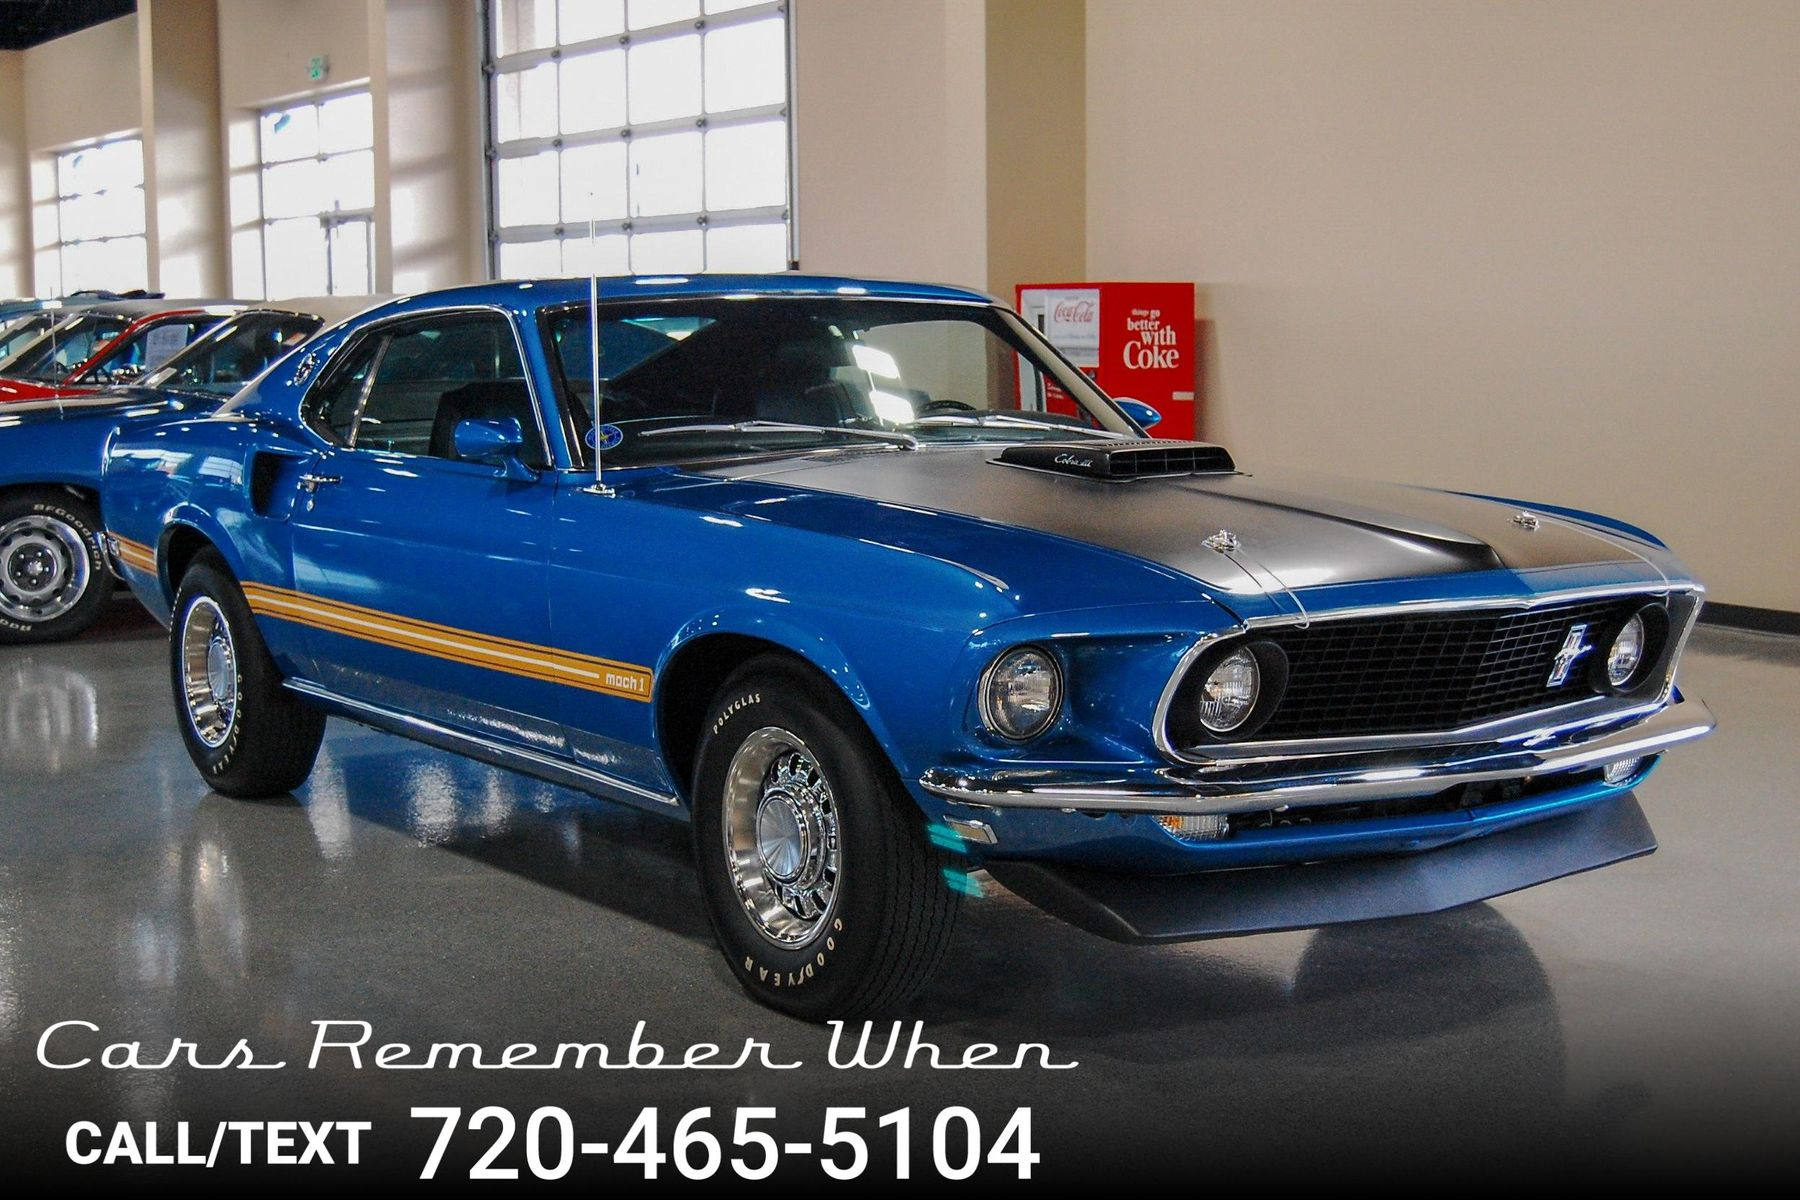 1969 ford mustang mach 1 scj cars remember when. Black Bedroom Furniture Sets. Home Design Ideas